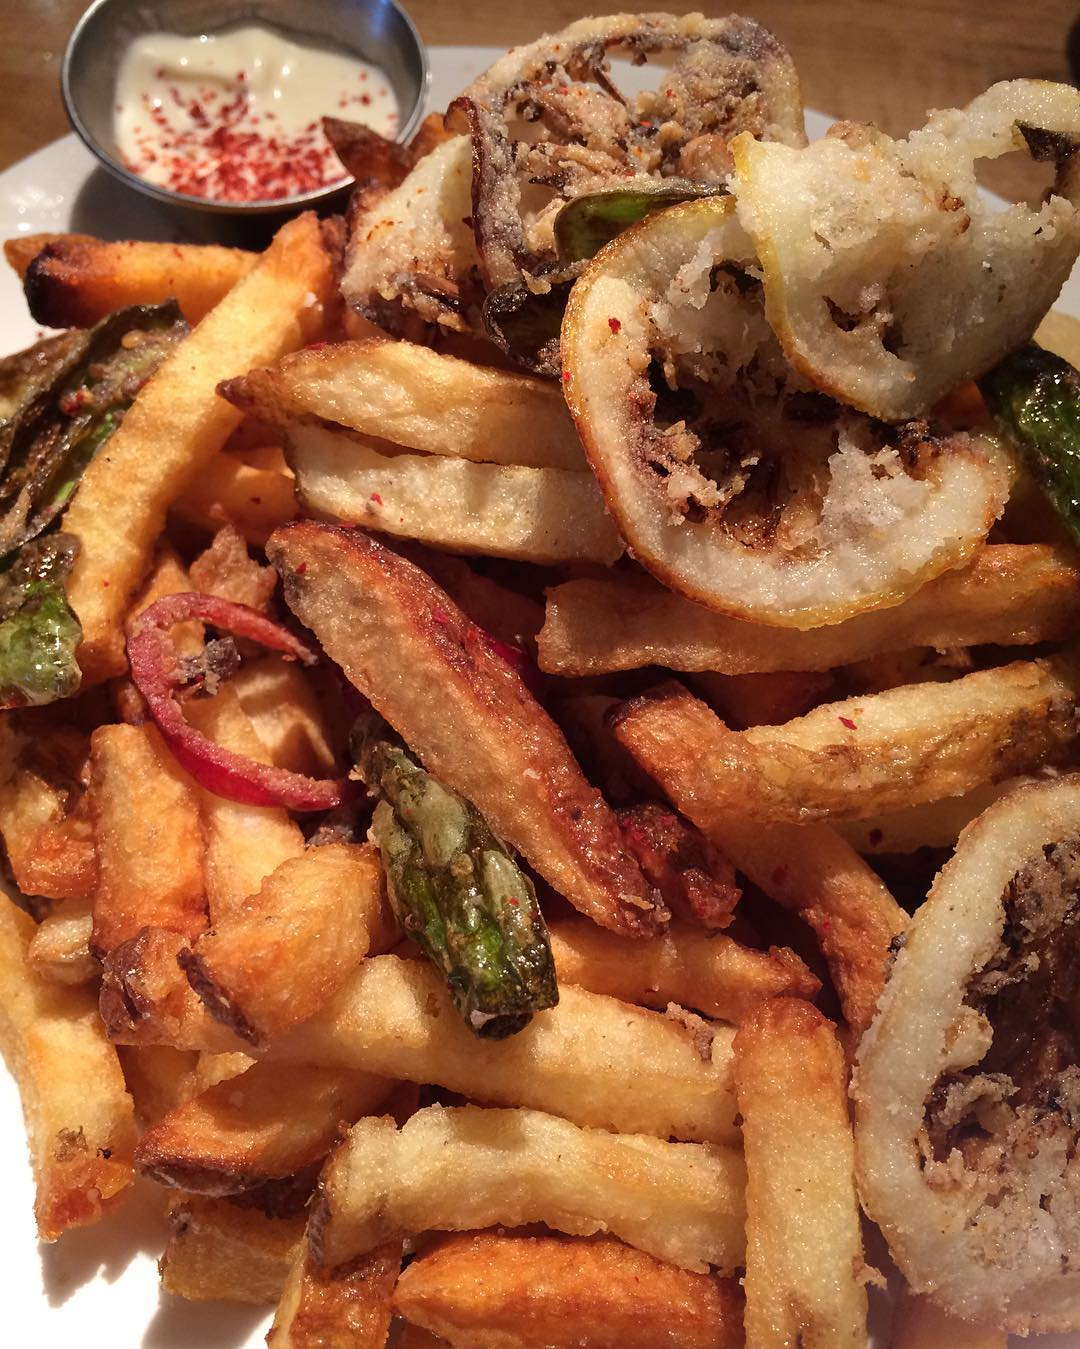 Photo of french fries mixed with lemons and chilis.